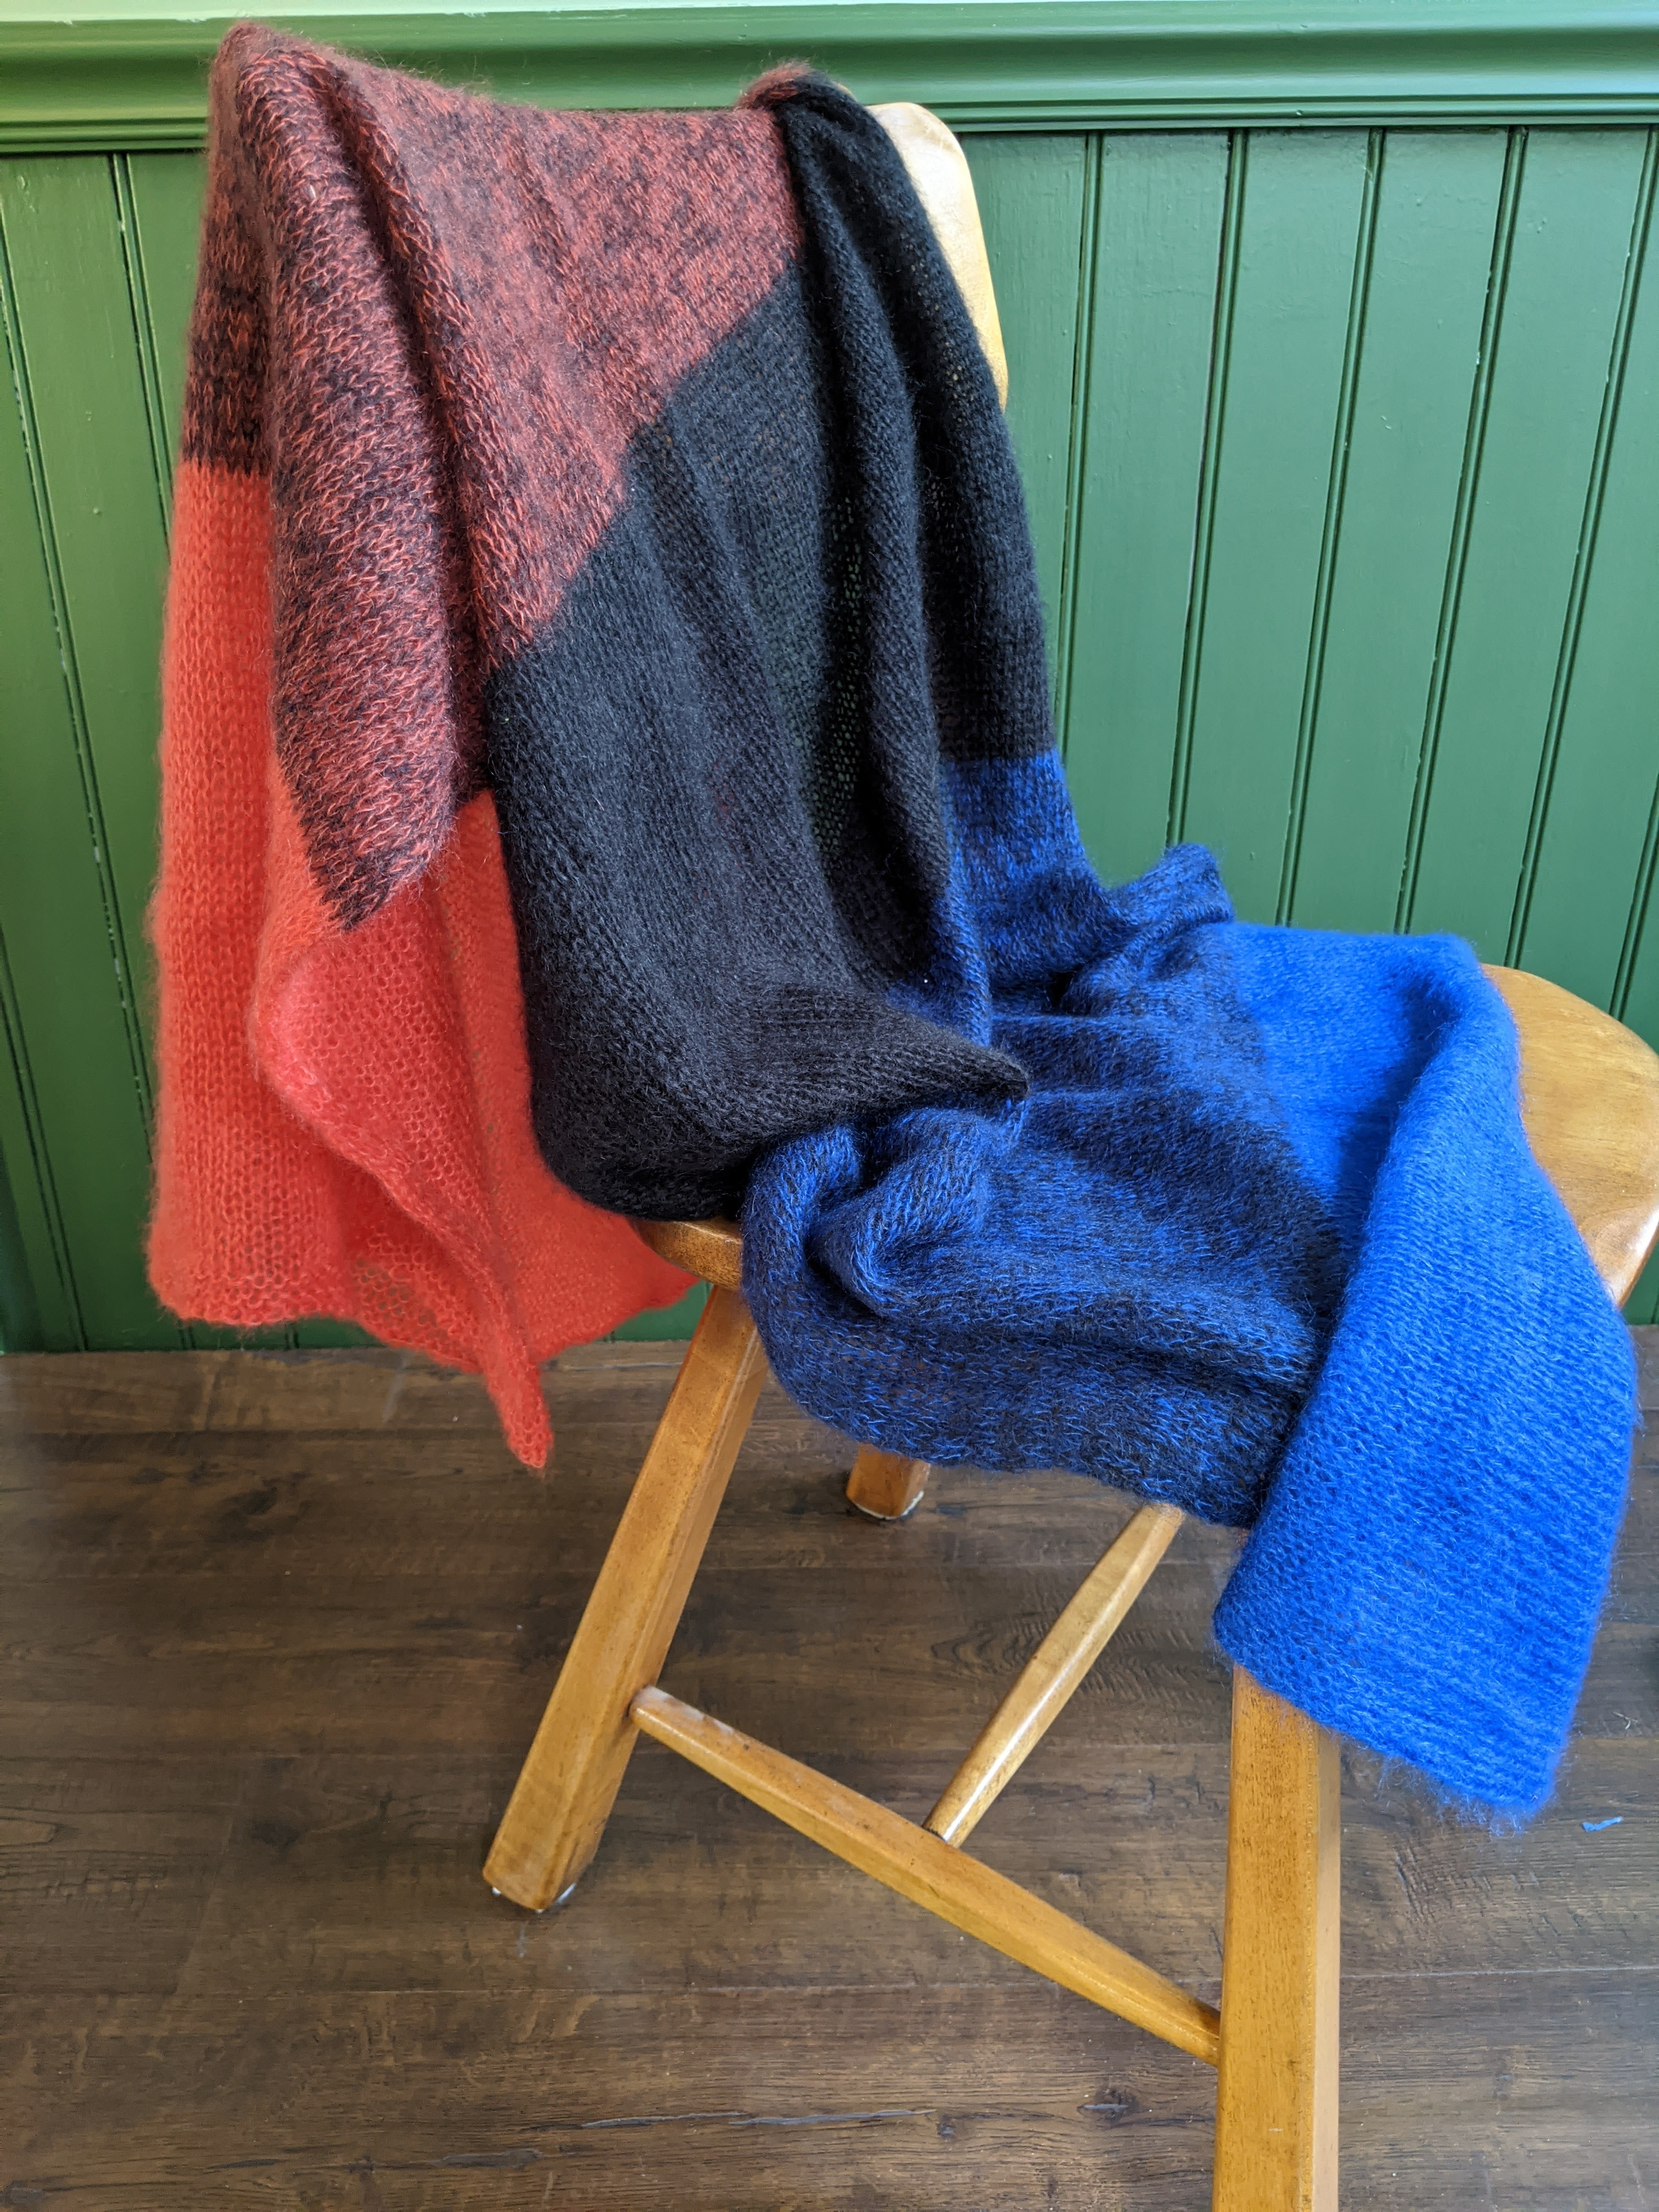 A completed Cold Spring shawl, knit in mohair yarn. The stripes are orange, orange black, black, blue black and blue.